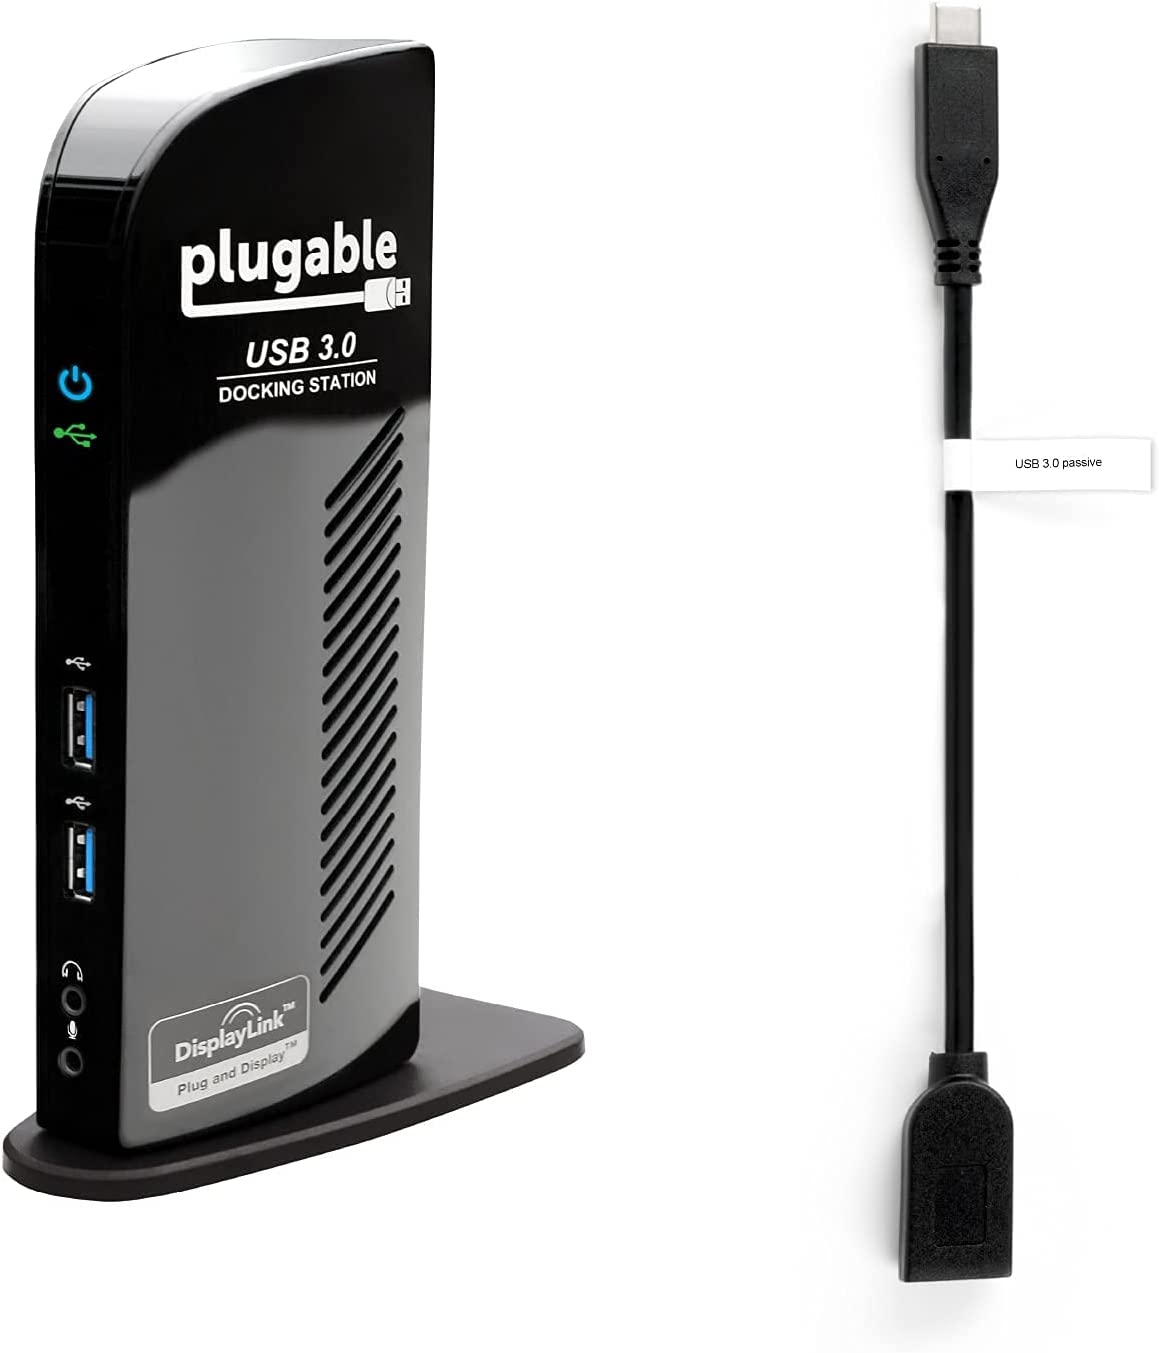 Plugable USB 3.0 Universal Laptop Docking Station Dual Monitor Bundle with USB C to USB A Adapter Cable for Windows and Mac (Dual Video: HDMI and DVI/VGA/HDMI, Gigabit Ethernet, Audio, 6 USB Ports)